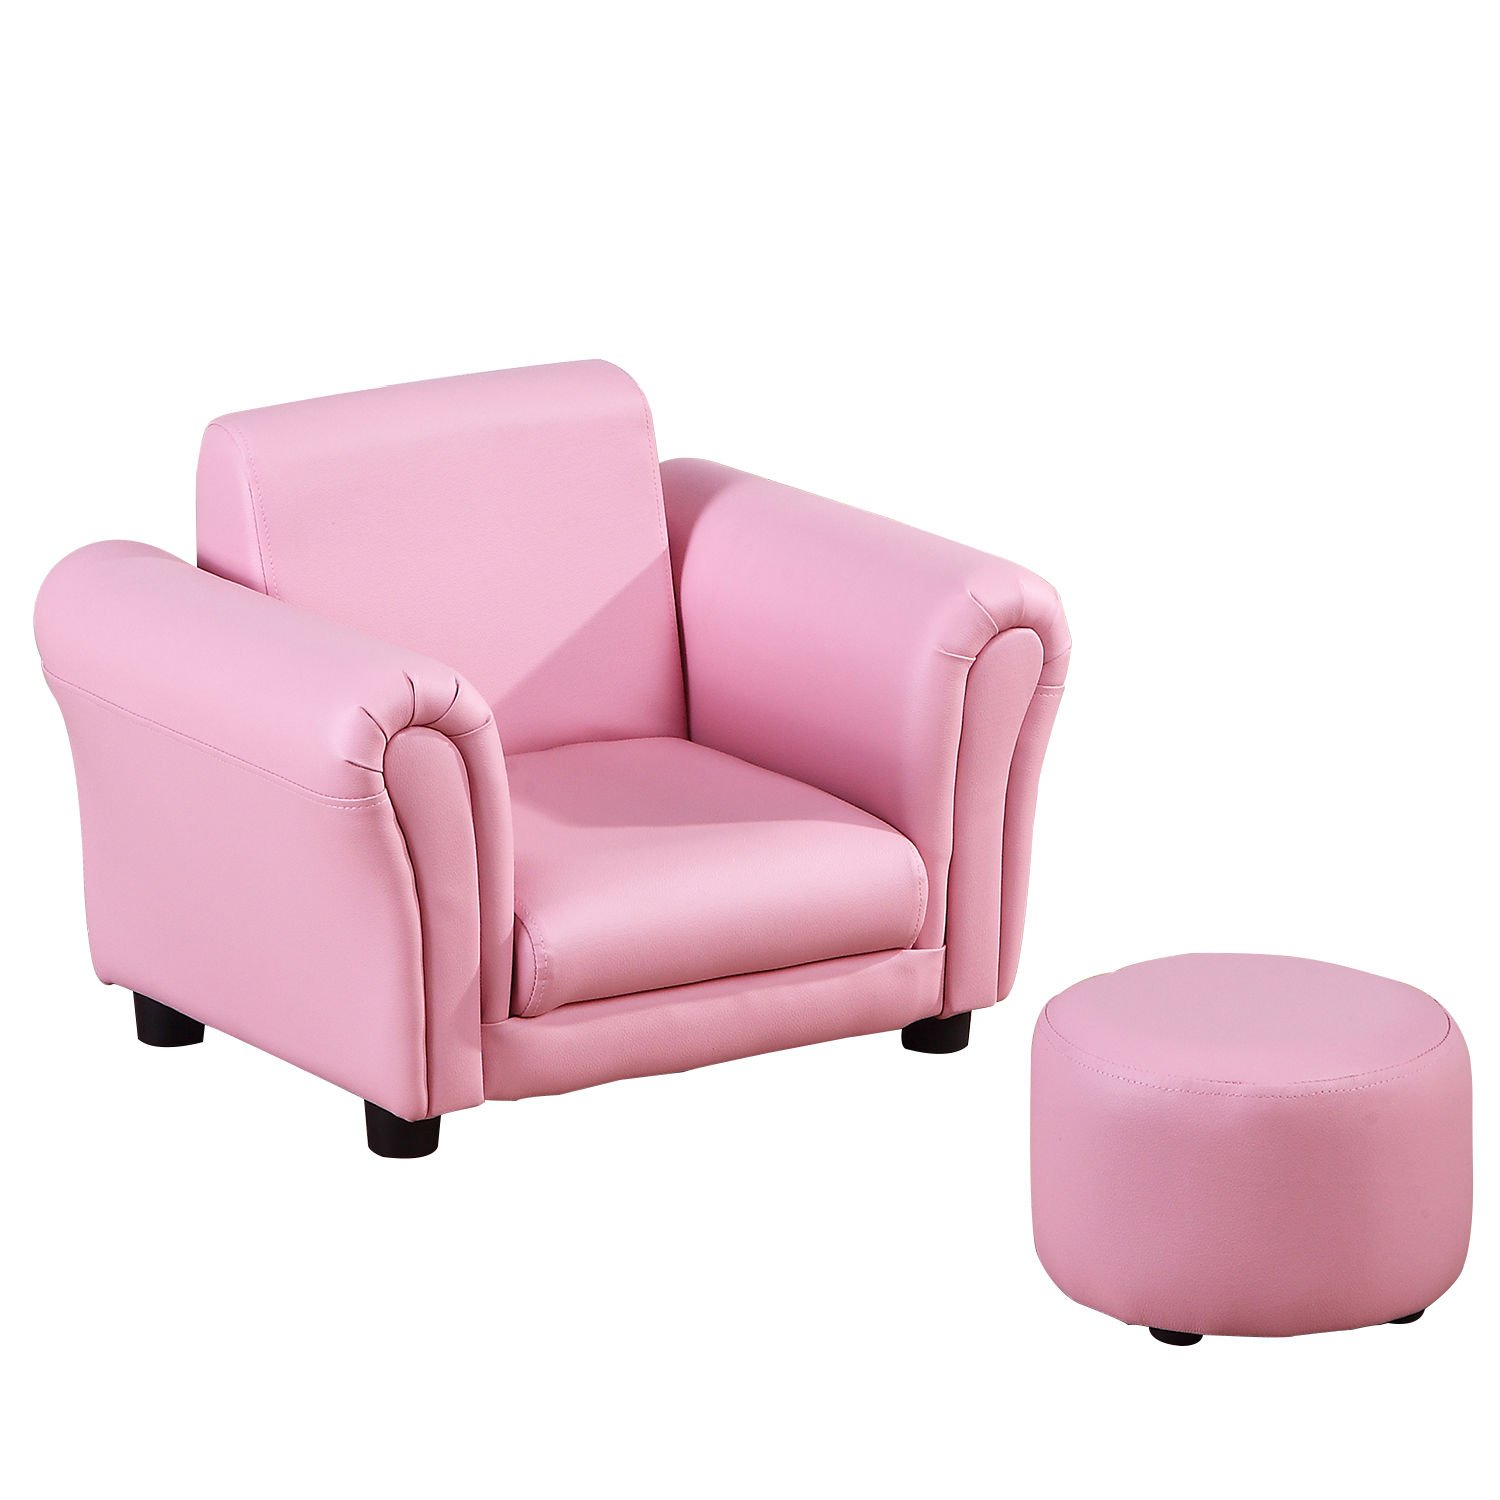 HOMCOM Single Seater Kids Sofa Set Children Couch Seating Game Chair Seat Armchair w/Free Footstool (Pink) Sold by MHSTAR UK310-008PK0331